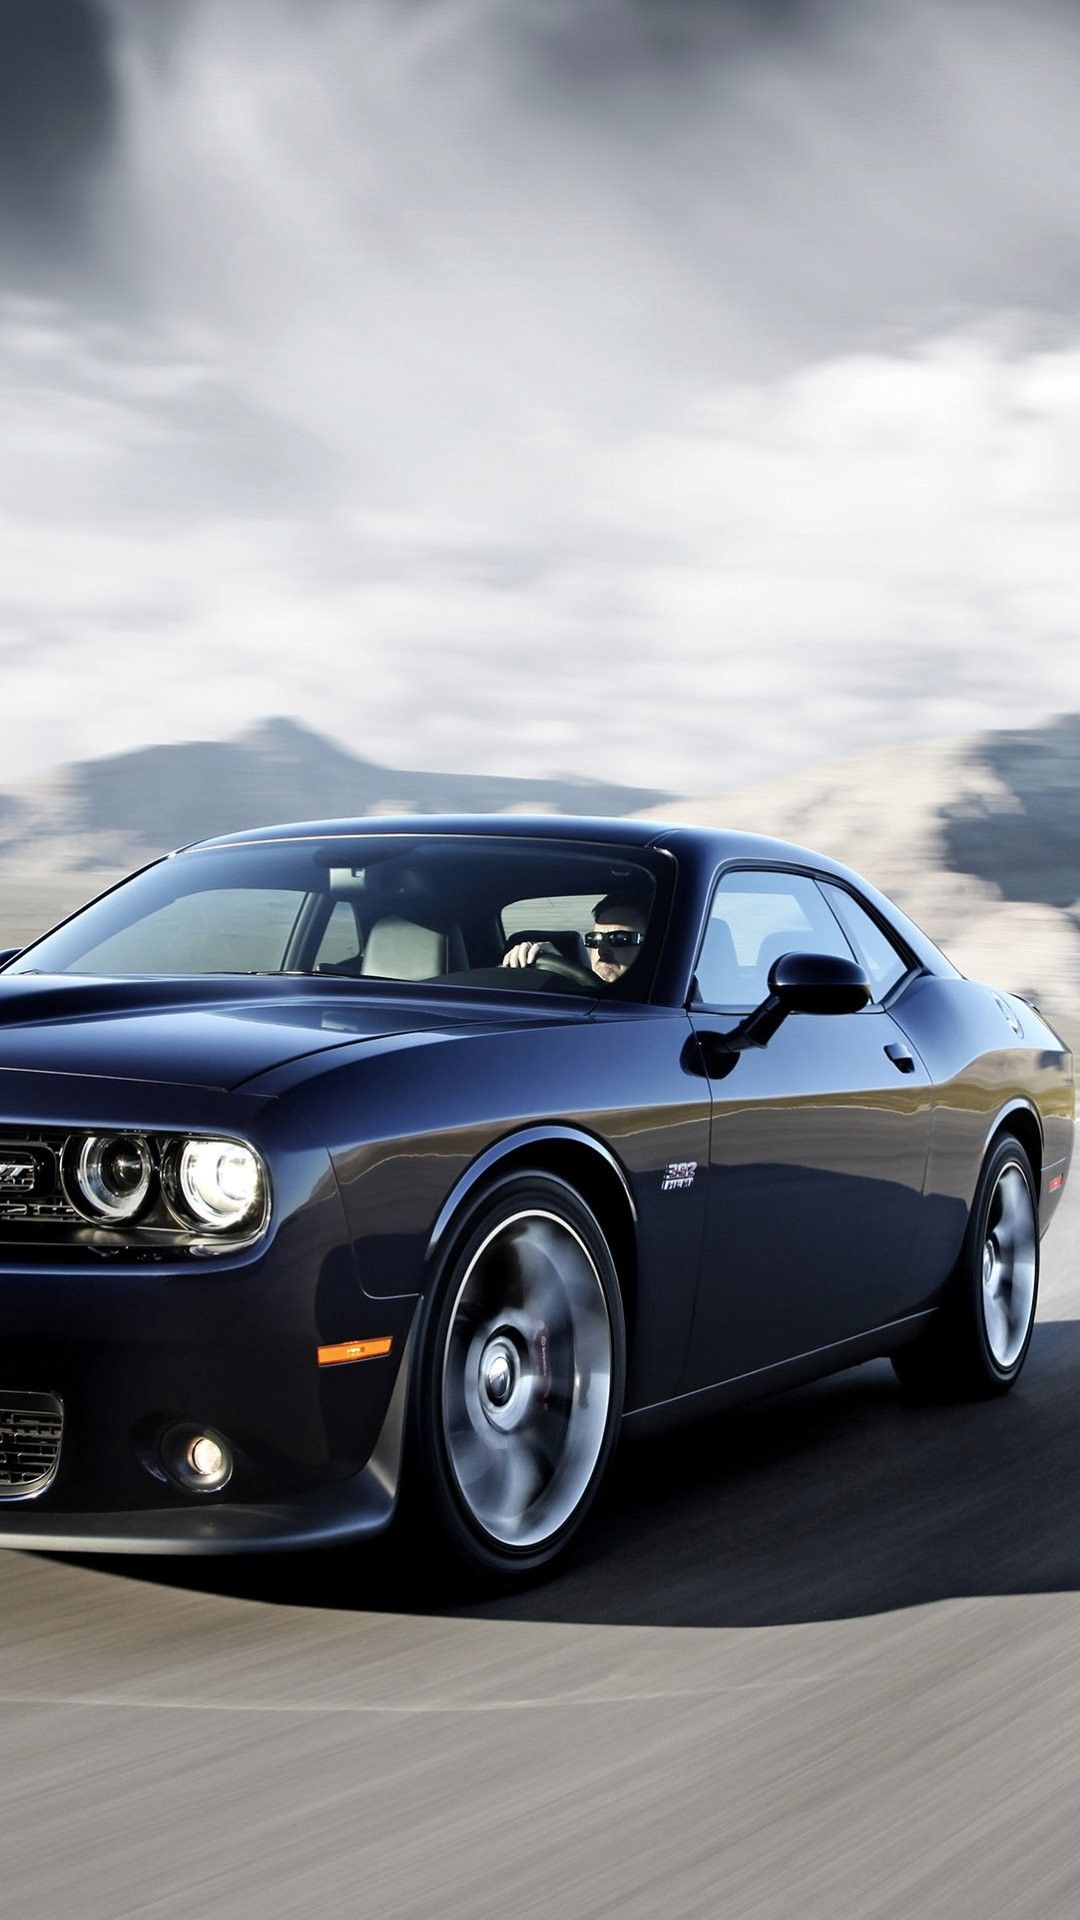 80 Dodge Challenger Black Hellcat Android Iphone Desktop Hd Backgrounds Wallpapers 1080p 4k 1080x1920 2020